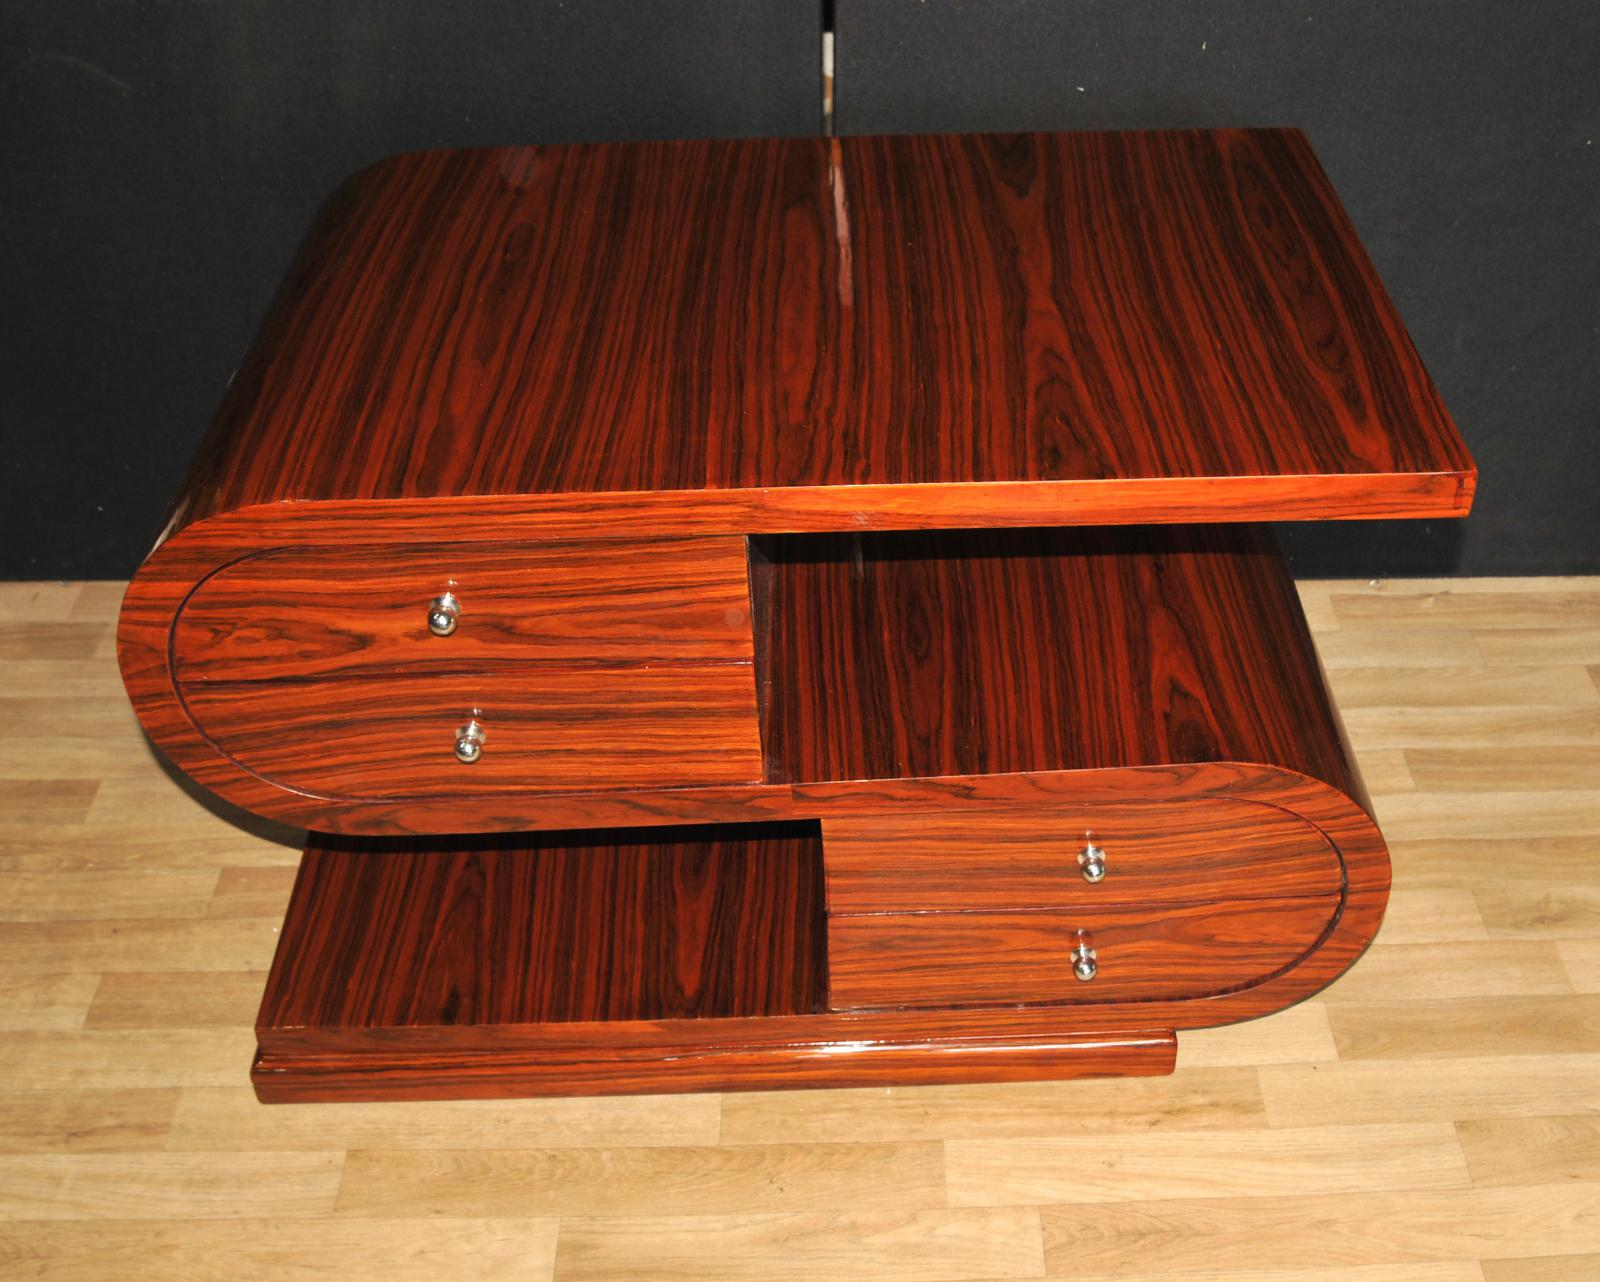 Art deco s shape coffee table rosewood modernist furniture - Table basse art deco ...